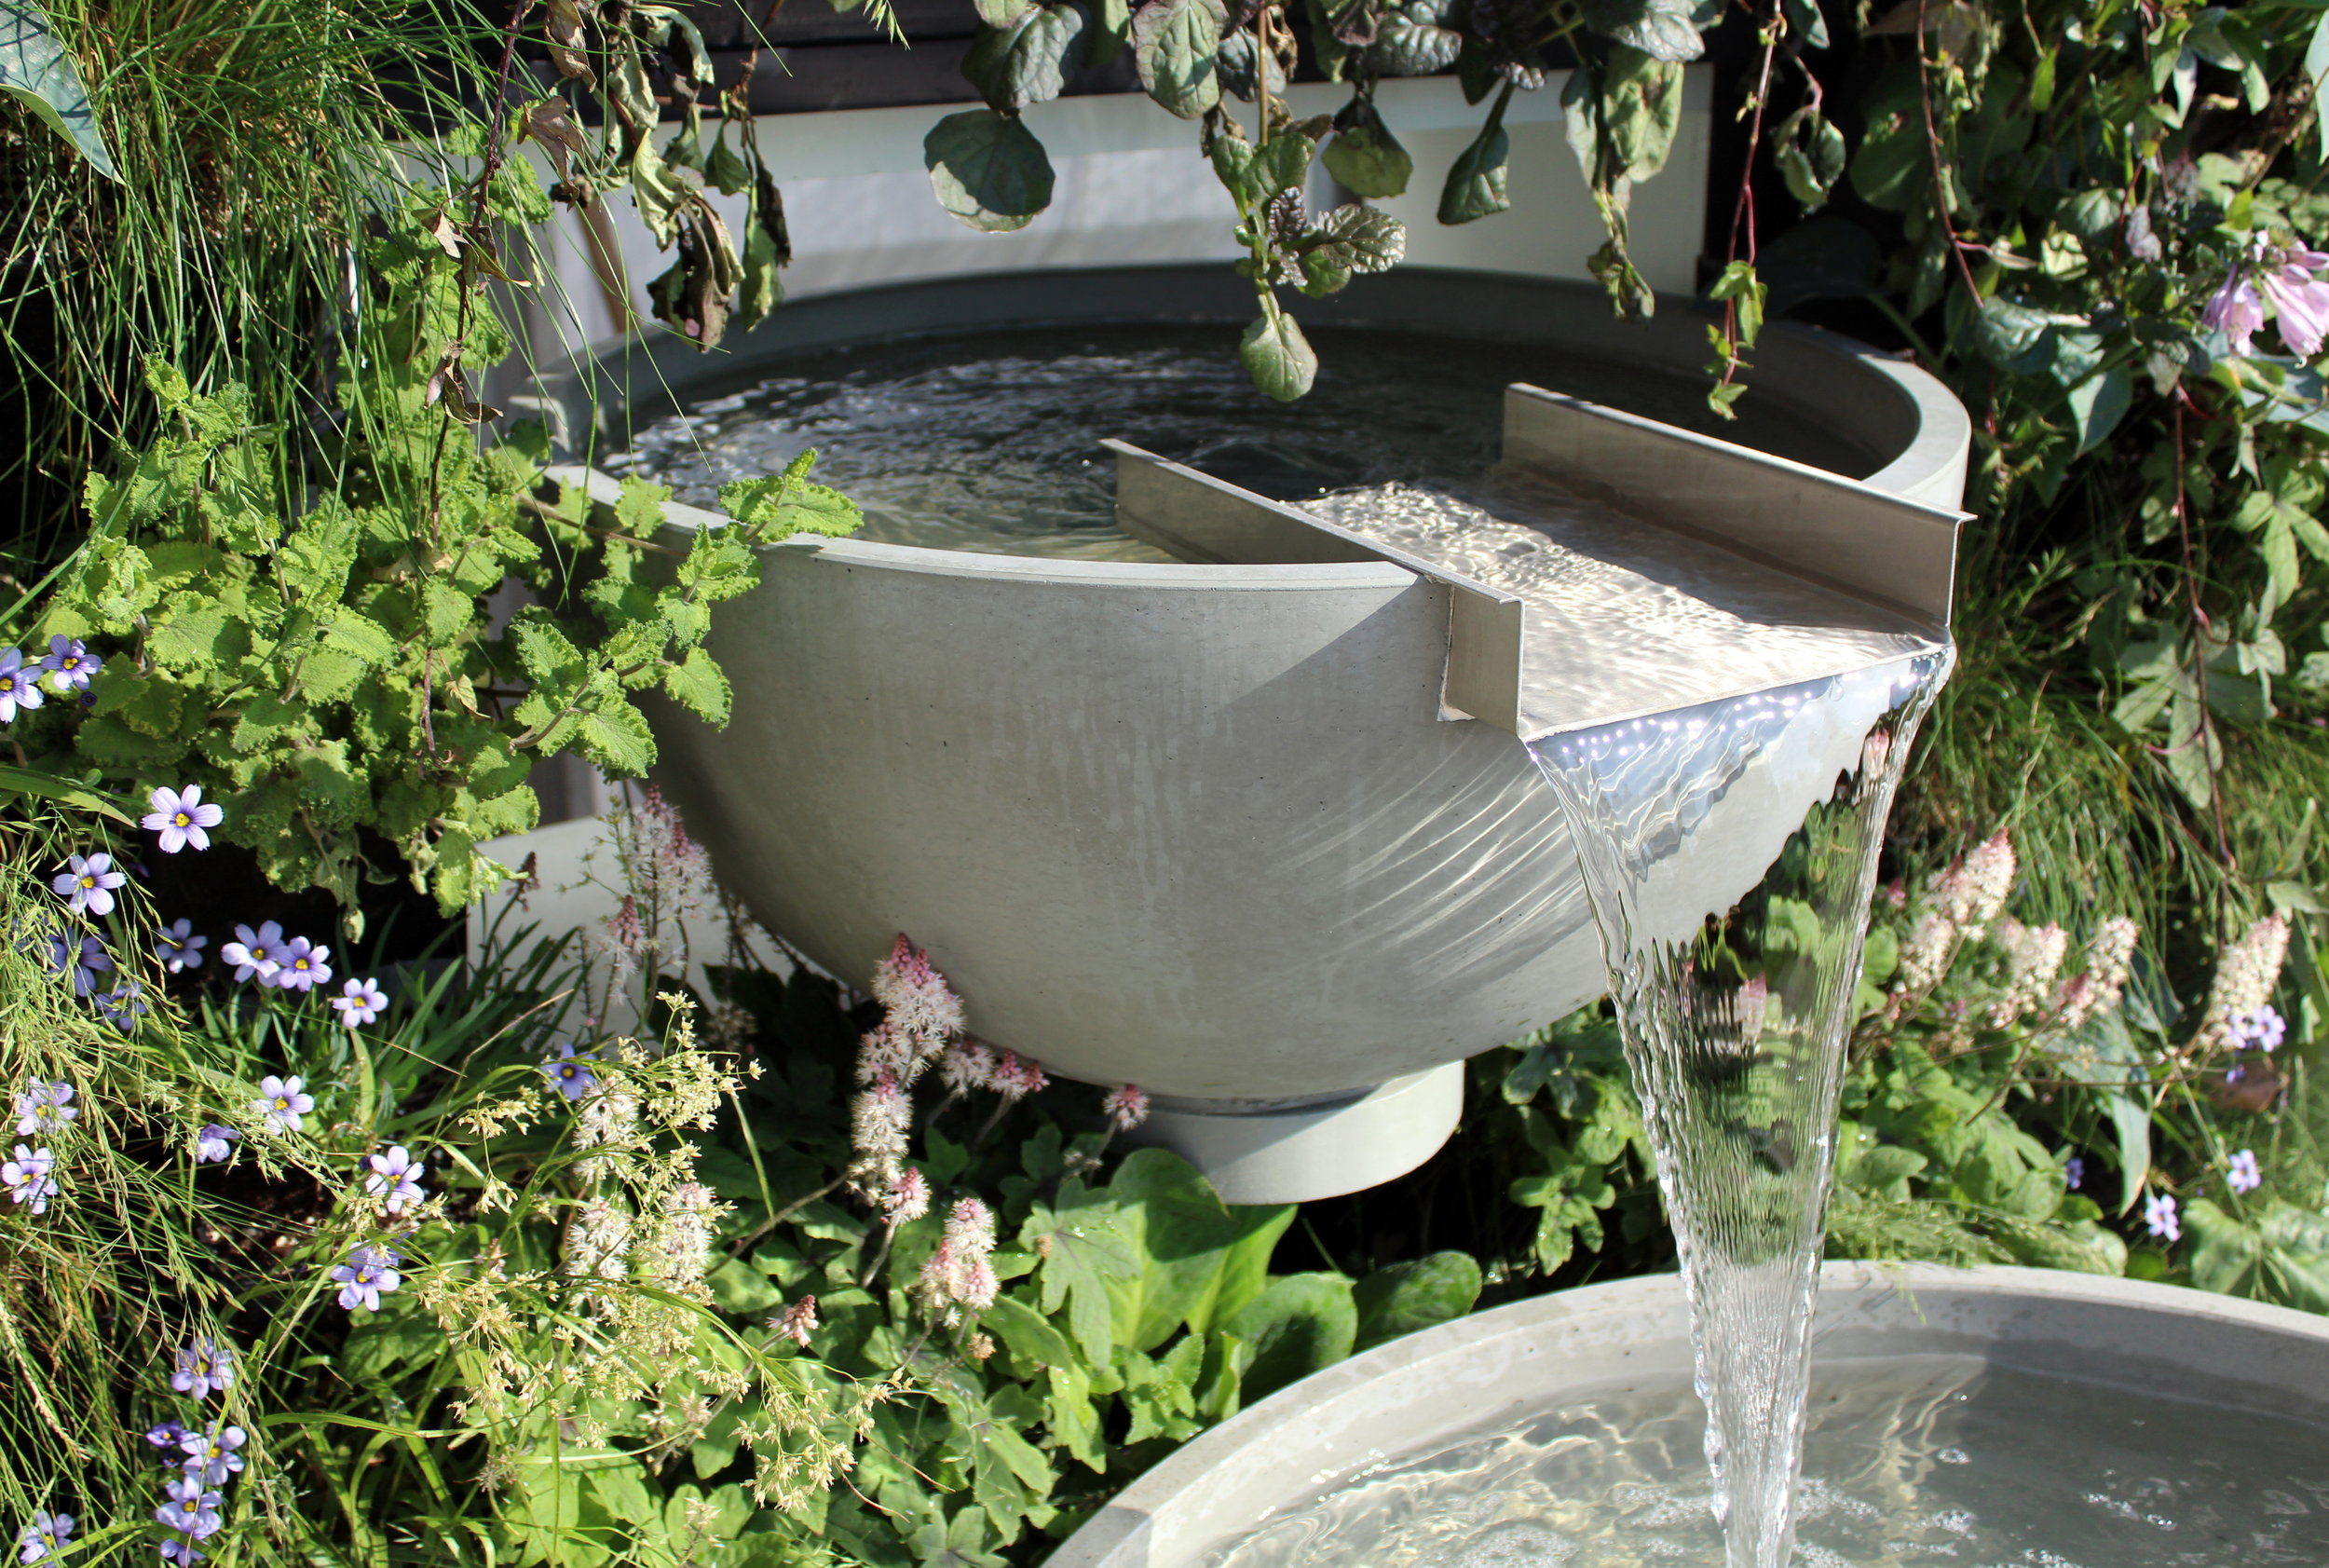 Water wall with Scupper Water Feature by Solus Decor and Living Wall by Green Matters UK